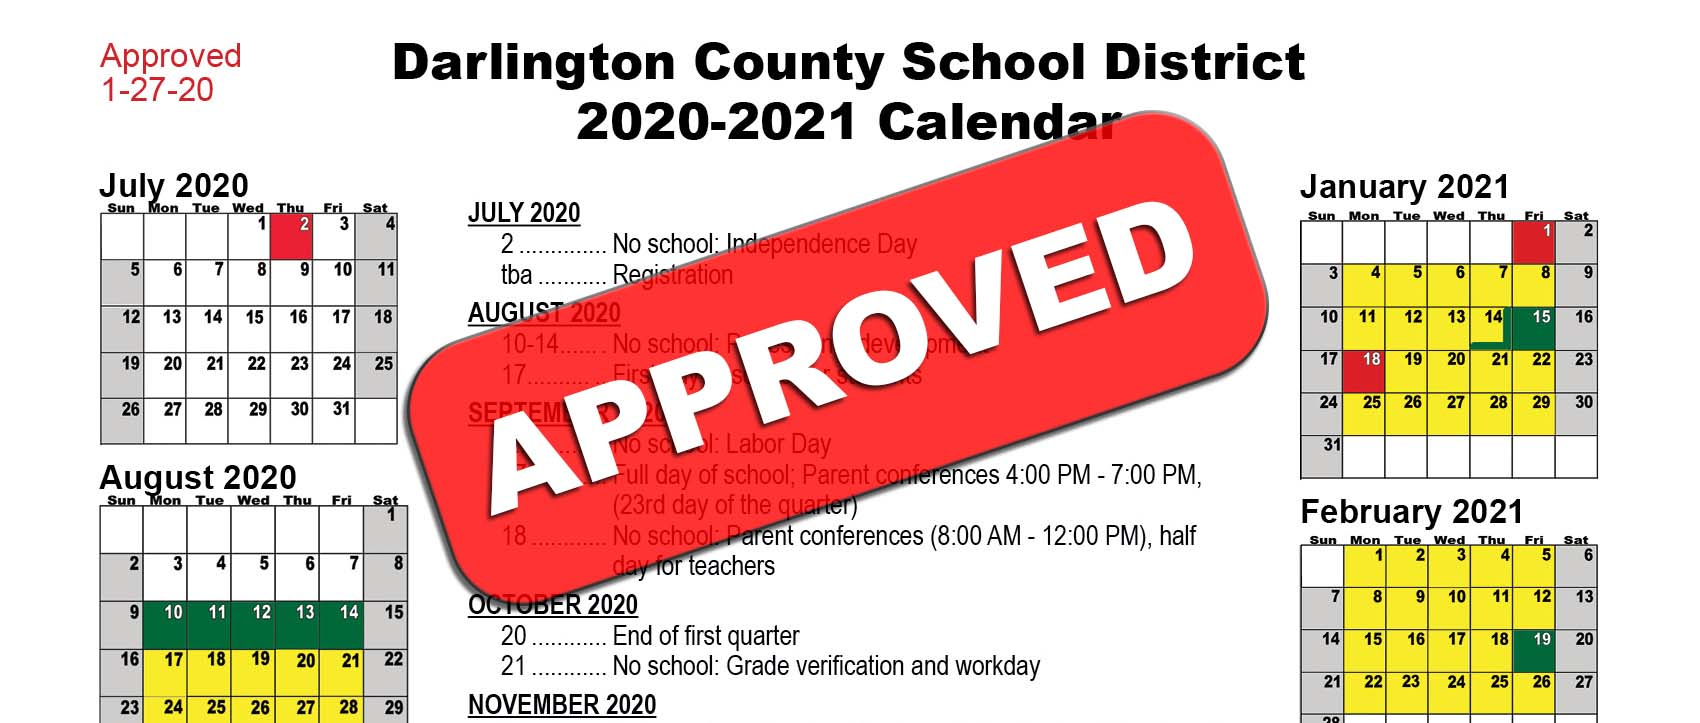 Board Of Education Approves 2020 2021 District Calendar Intended For Georgia State University Calendar 2021 2020